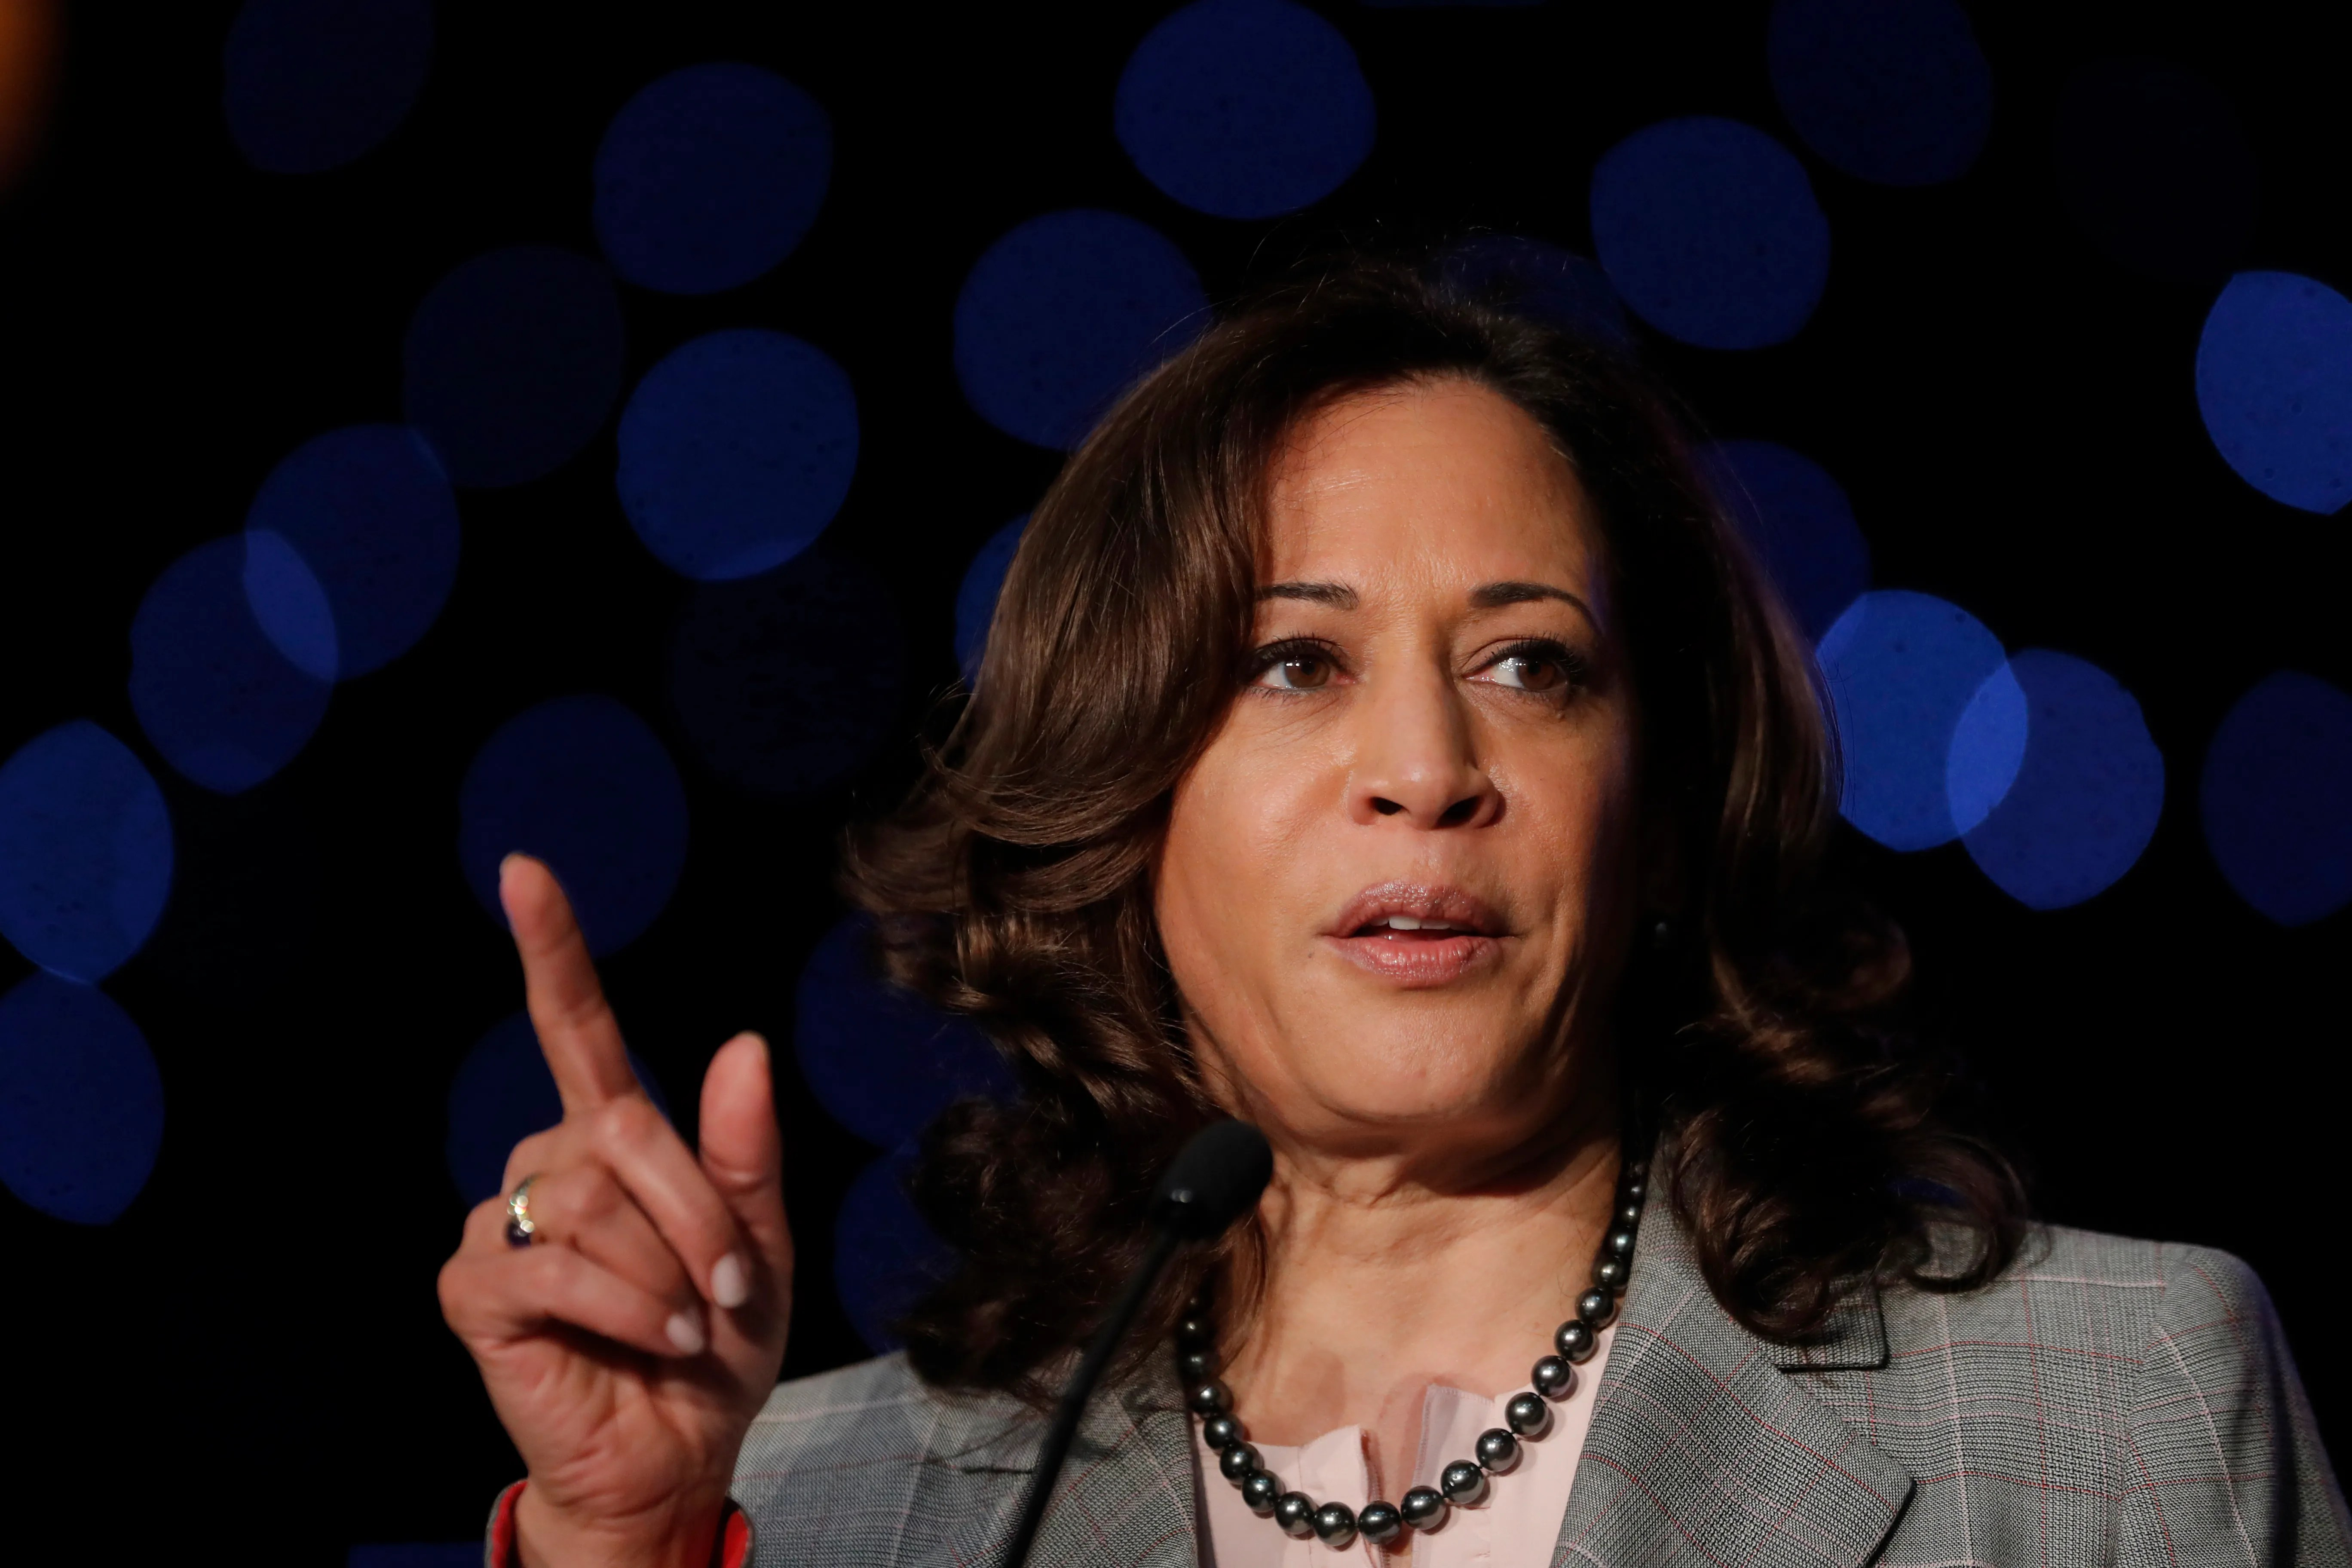 Democratic presidential candidate Sen. Kamala Harris, D-Calif., speaks at the Alpha Kappa Alpha Sorority South Central Regional Conference in New Orleans,  April 19, 2019.